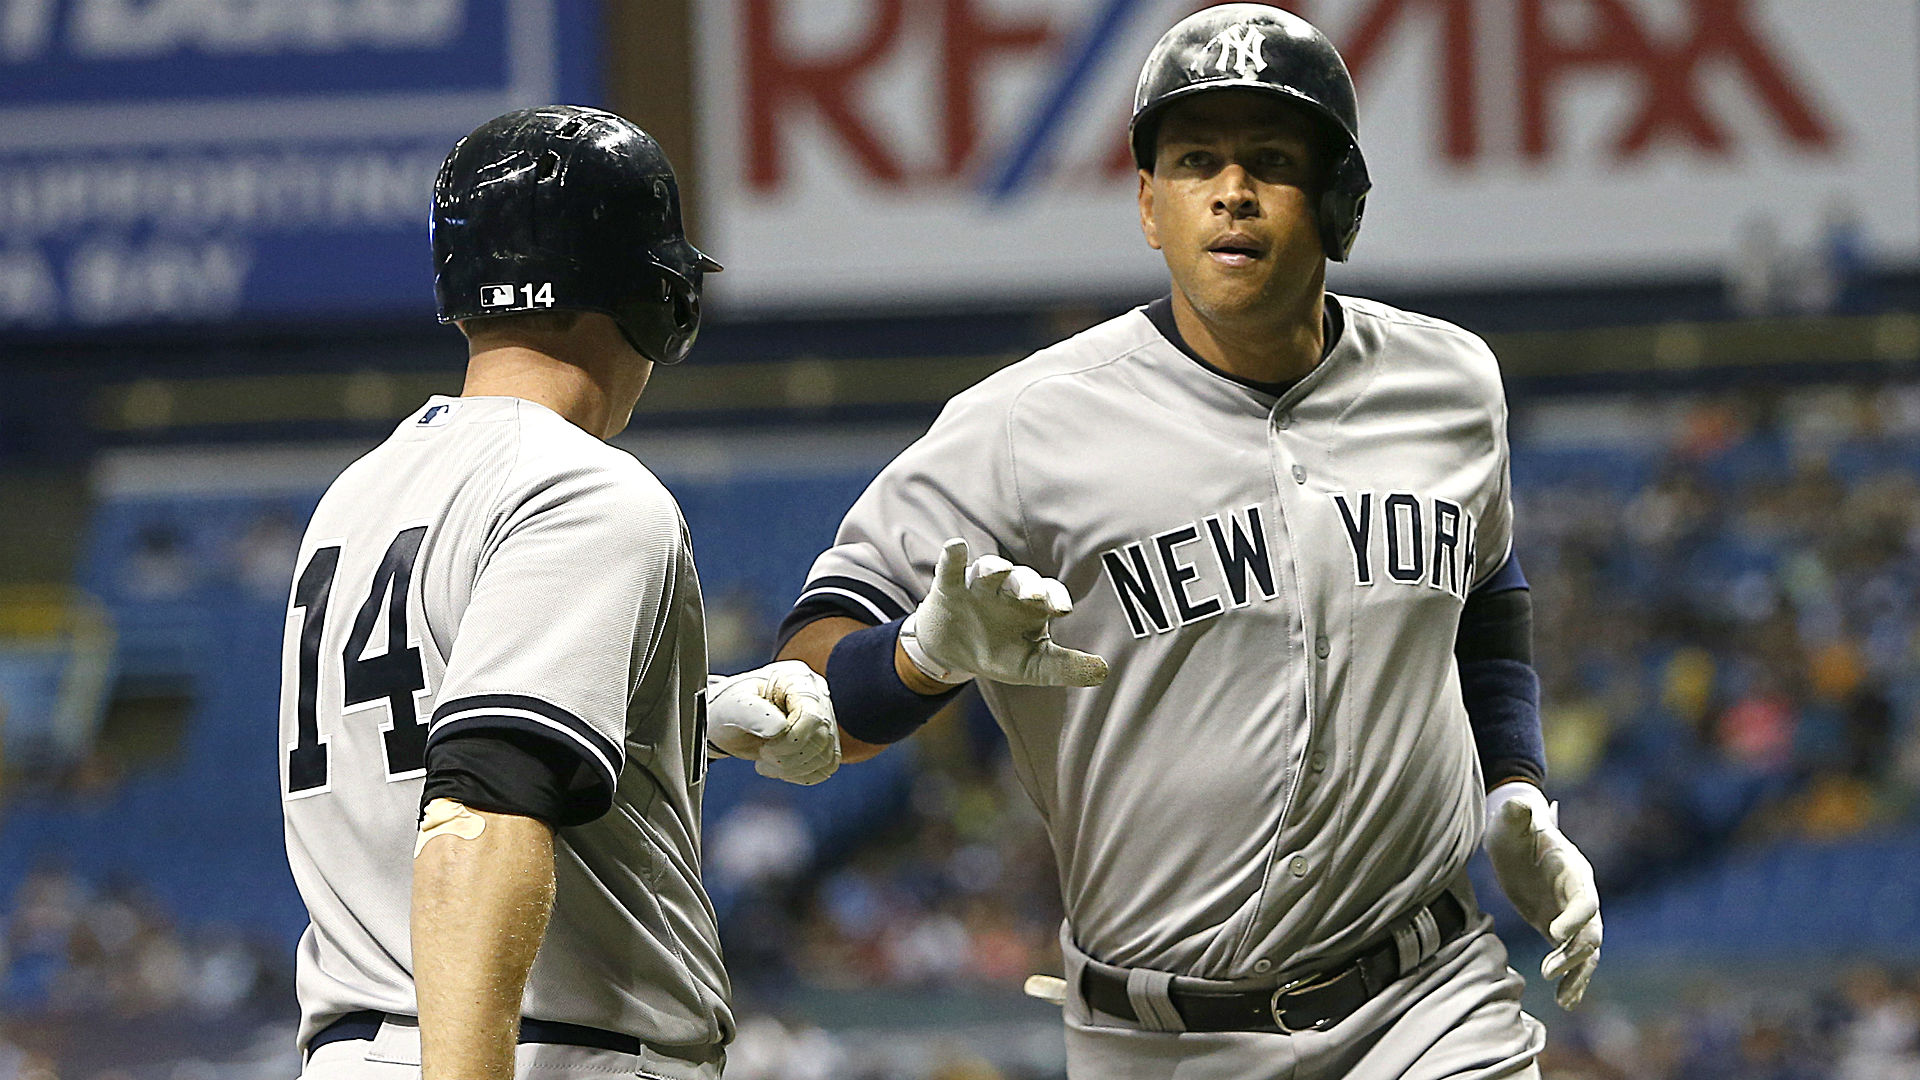 MLB odds and picks - Mets, Yankees among early season surprises